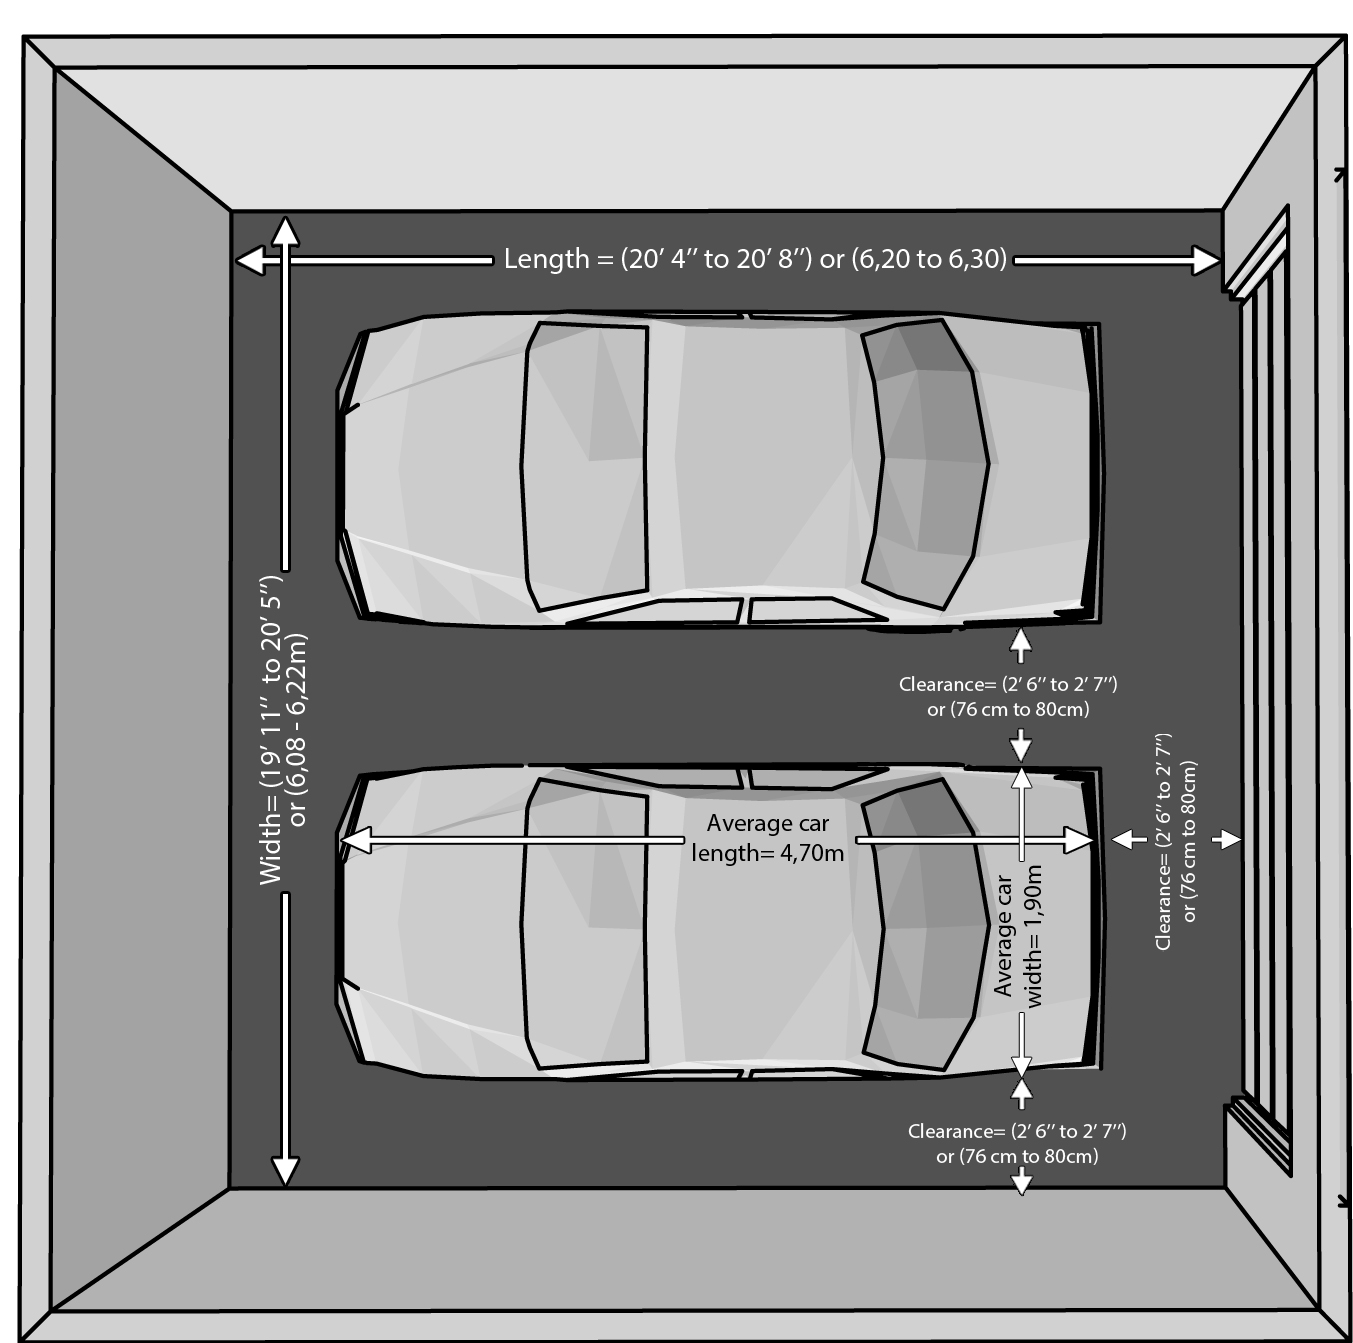 Garage Design Dimensions The Dimensions Of An One Car And A Two Car Garage